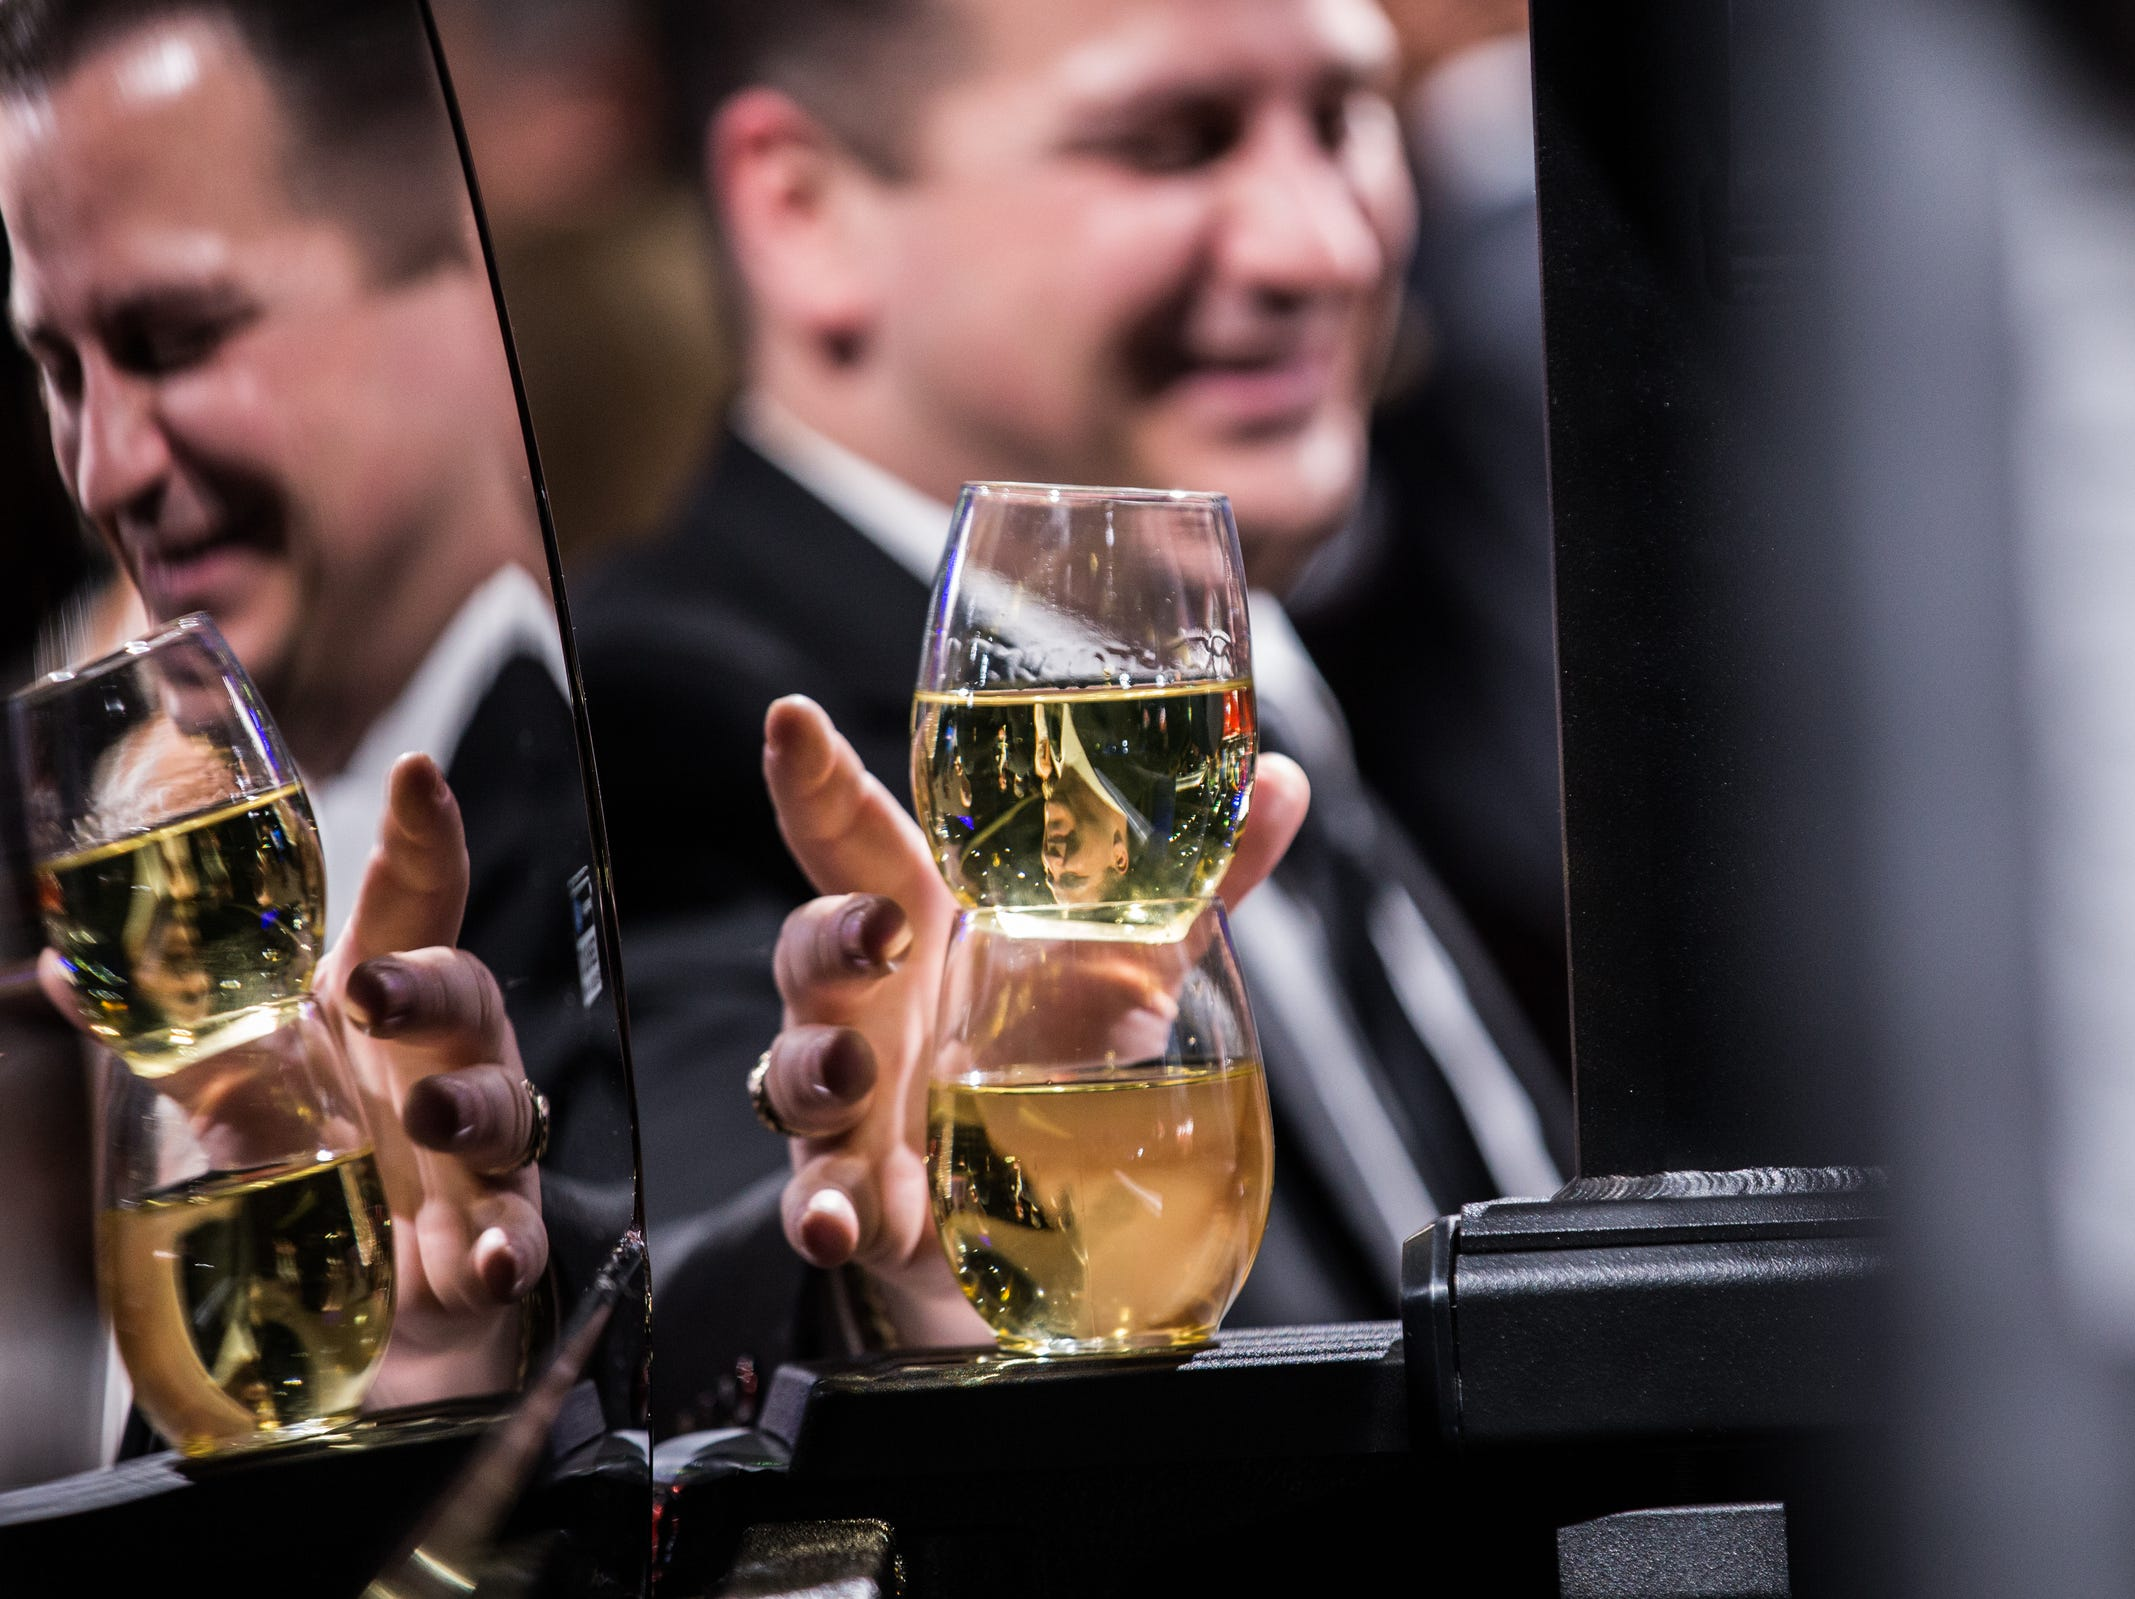 A man grabs his wine glasses stacked on a vehicle in the Ford section during the 2019 North American International Auto Show Charity Preview at Cobo Center in Detroit on Friday, January 18, 2019.